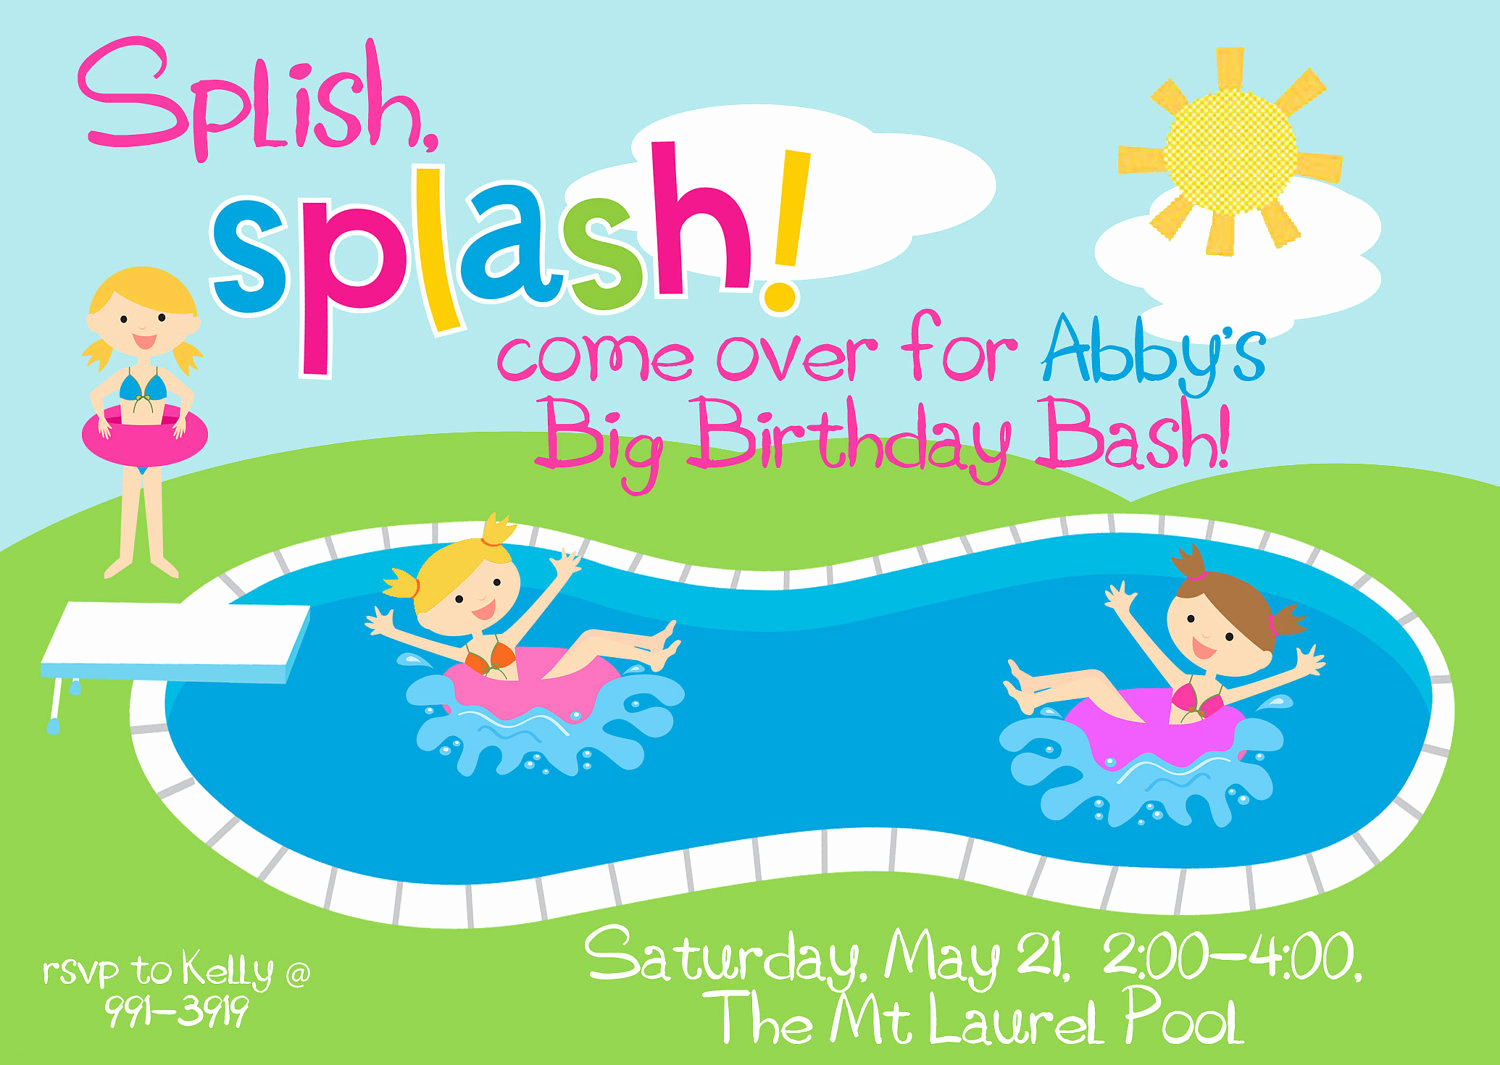 Pool Birthday Party Invitation Luxury Pool Party Birthday Party Invitation Splish by